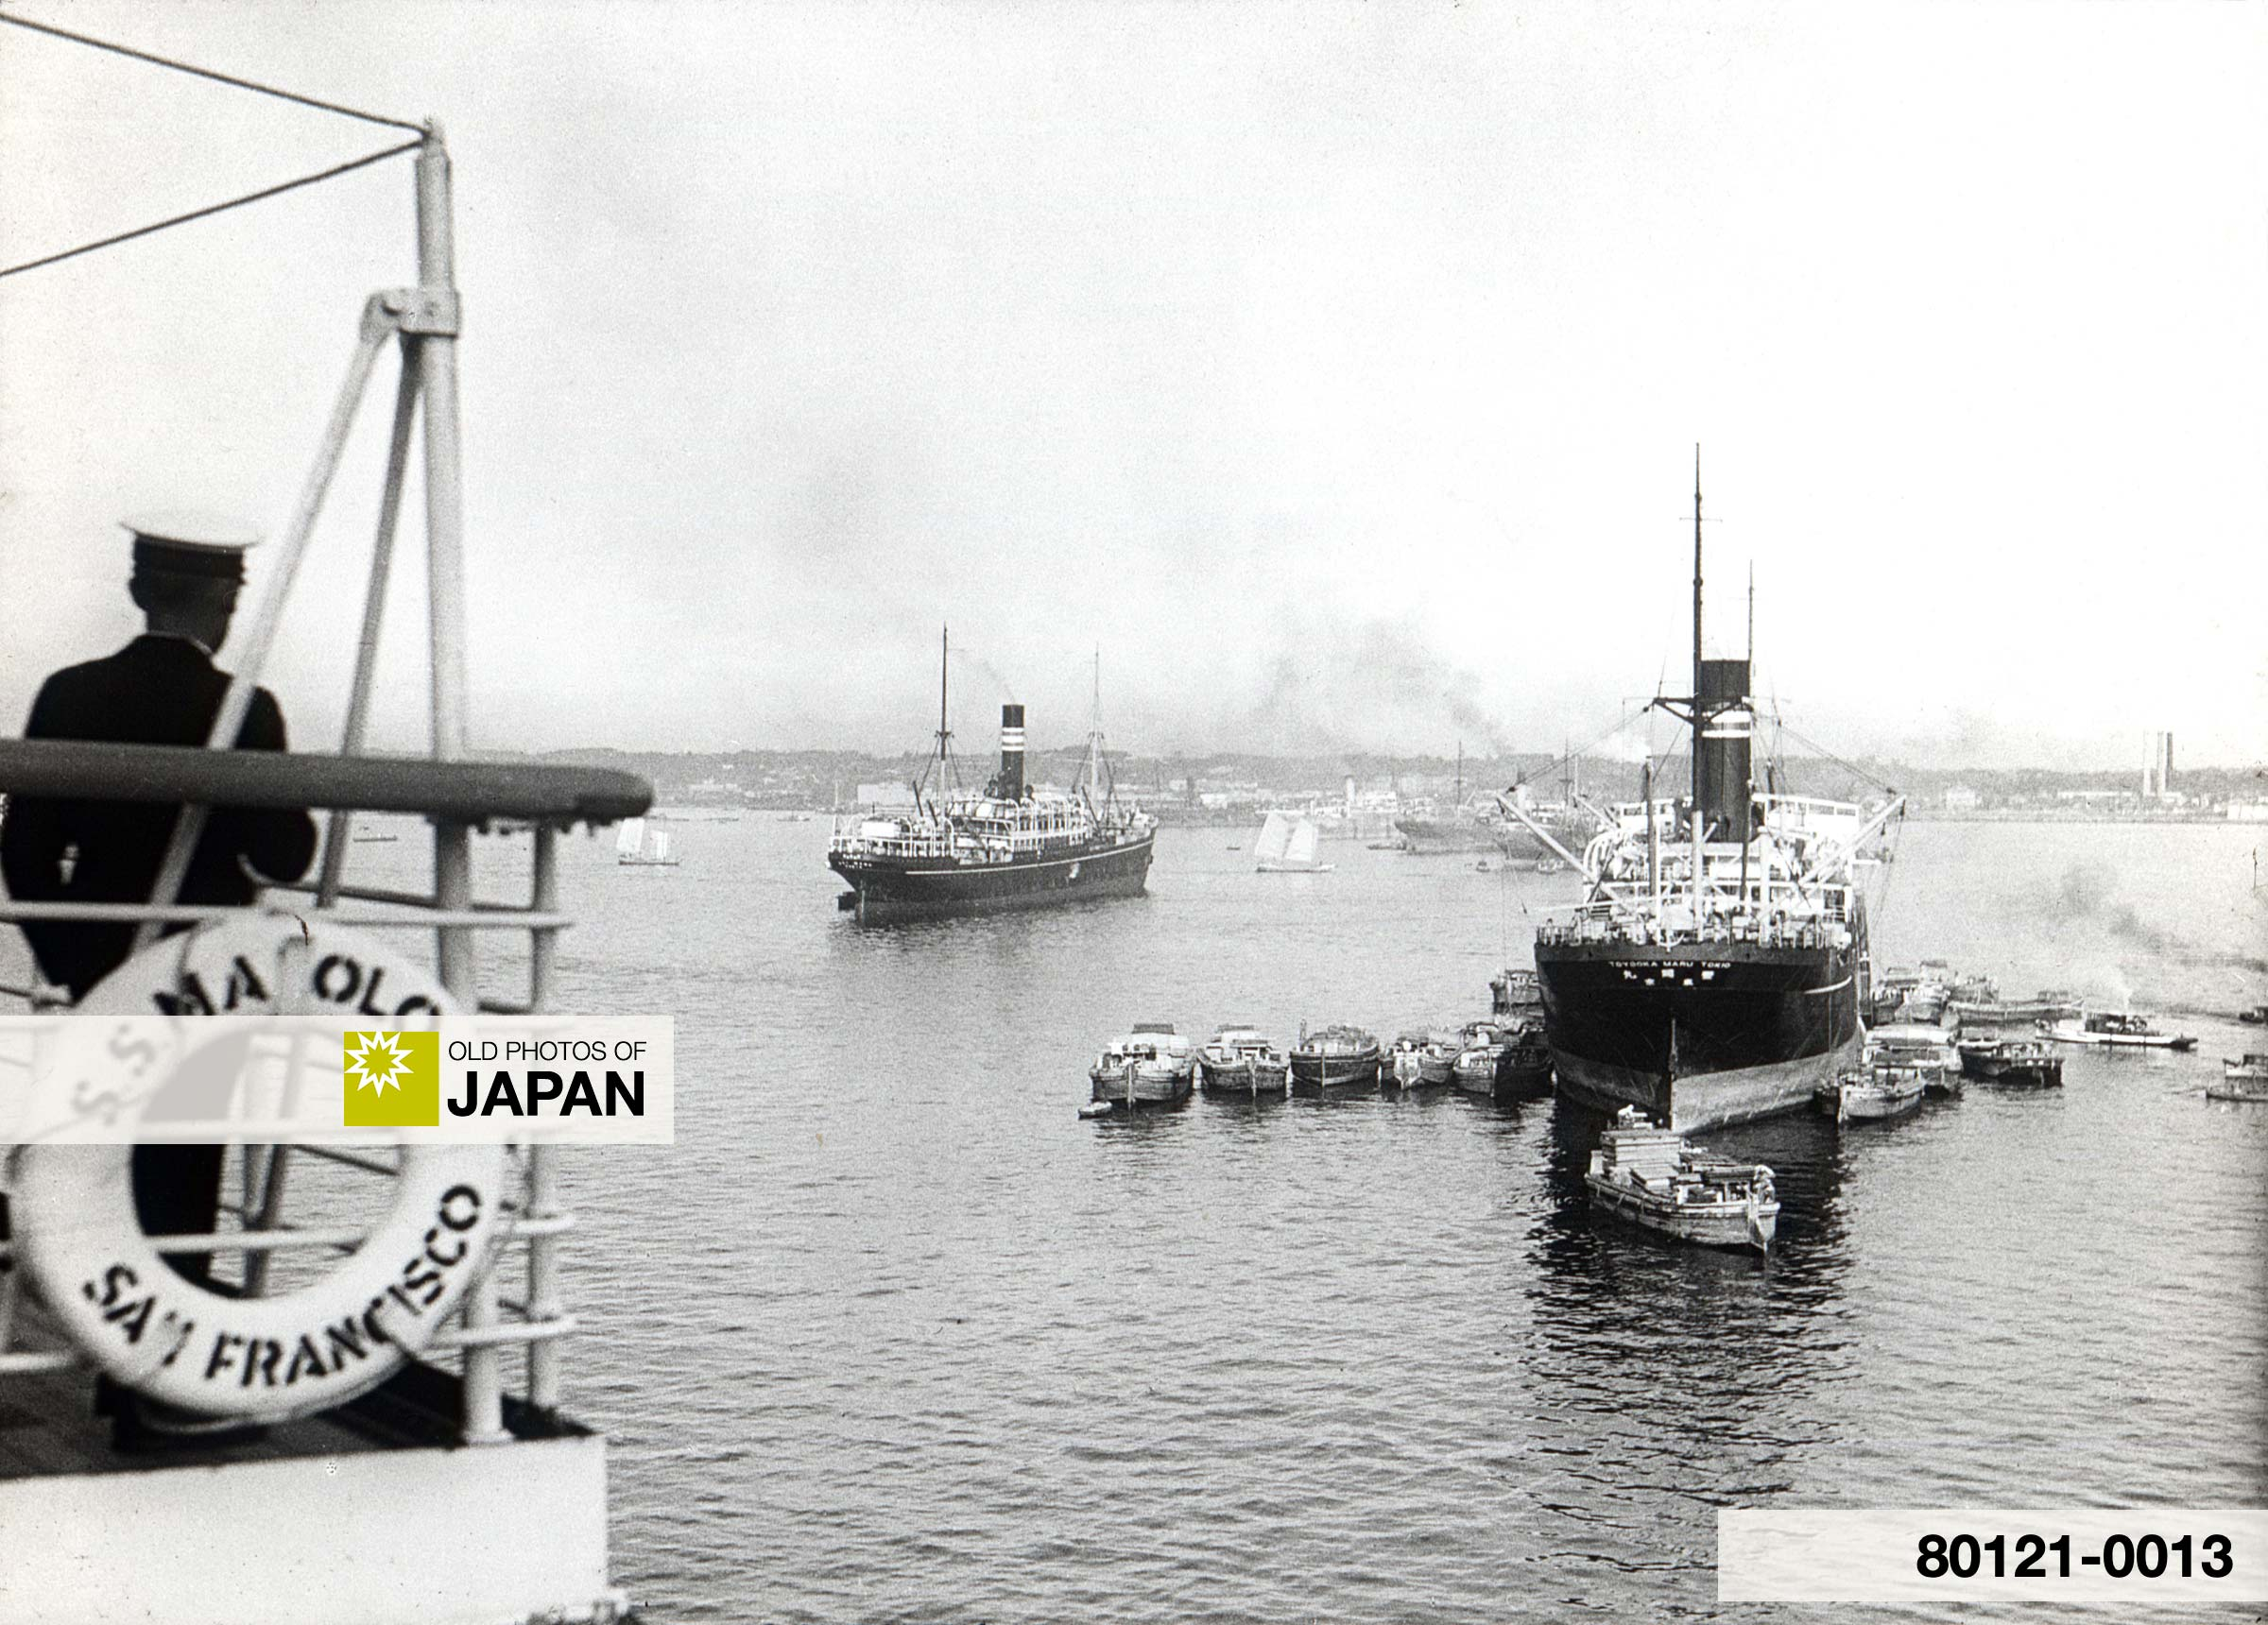 s.s. Malolo and other Steamers and Liners in Yokohama Harbor, Japan (October 1929).